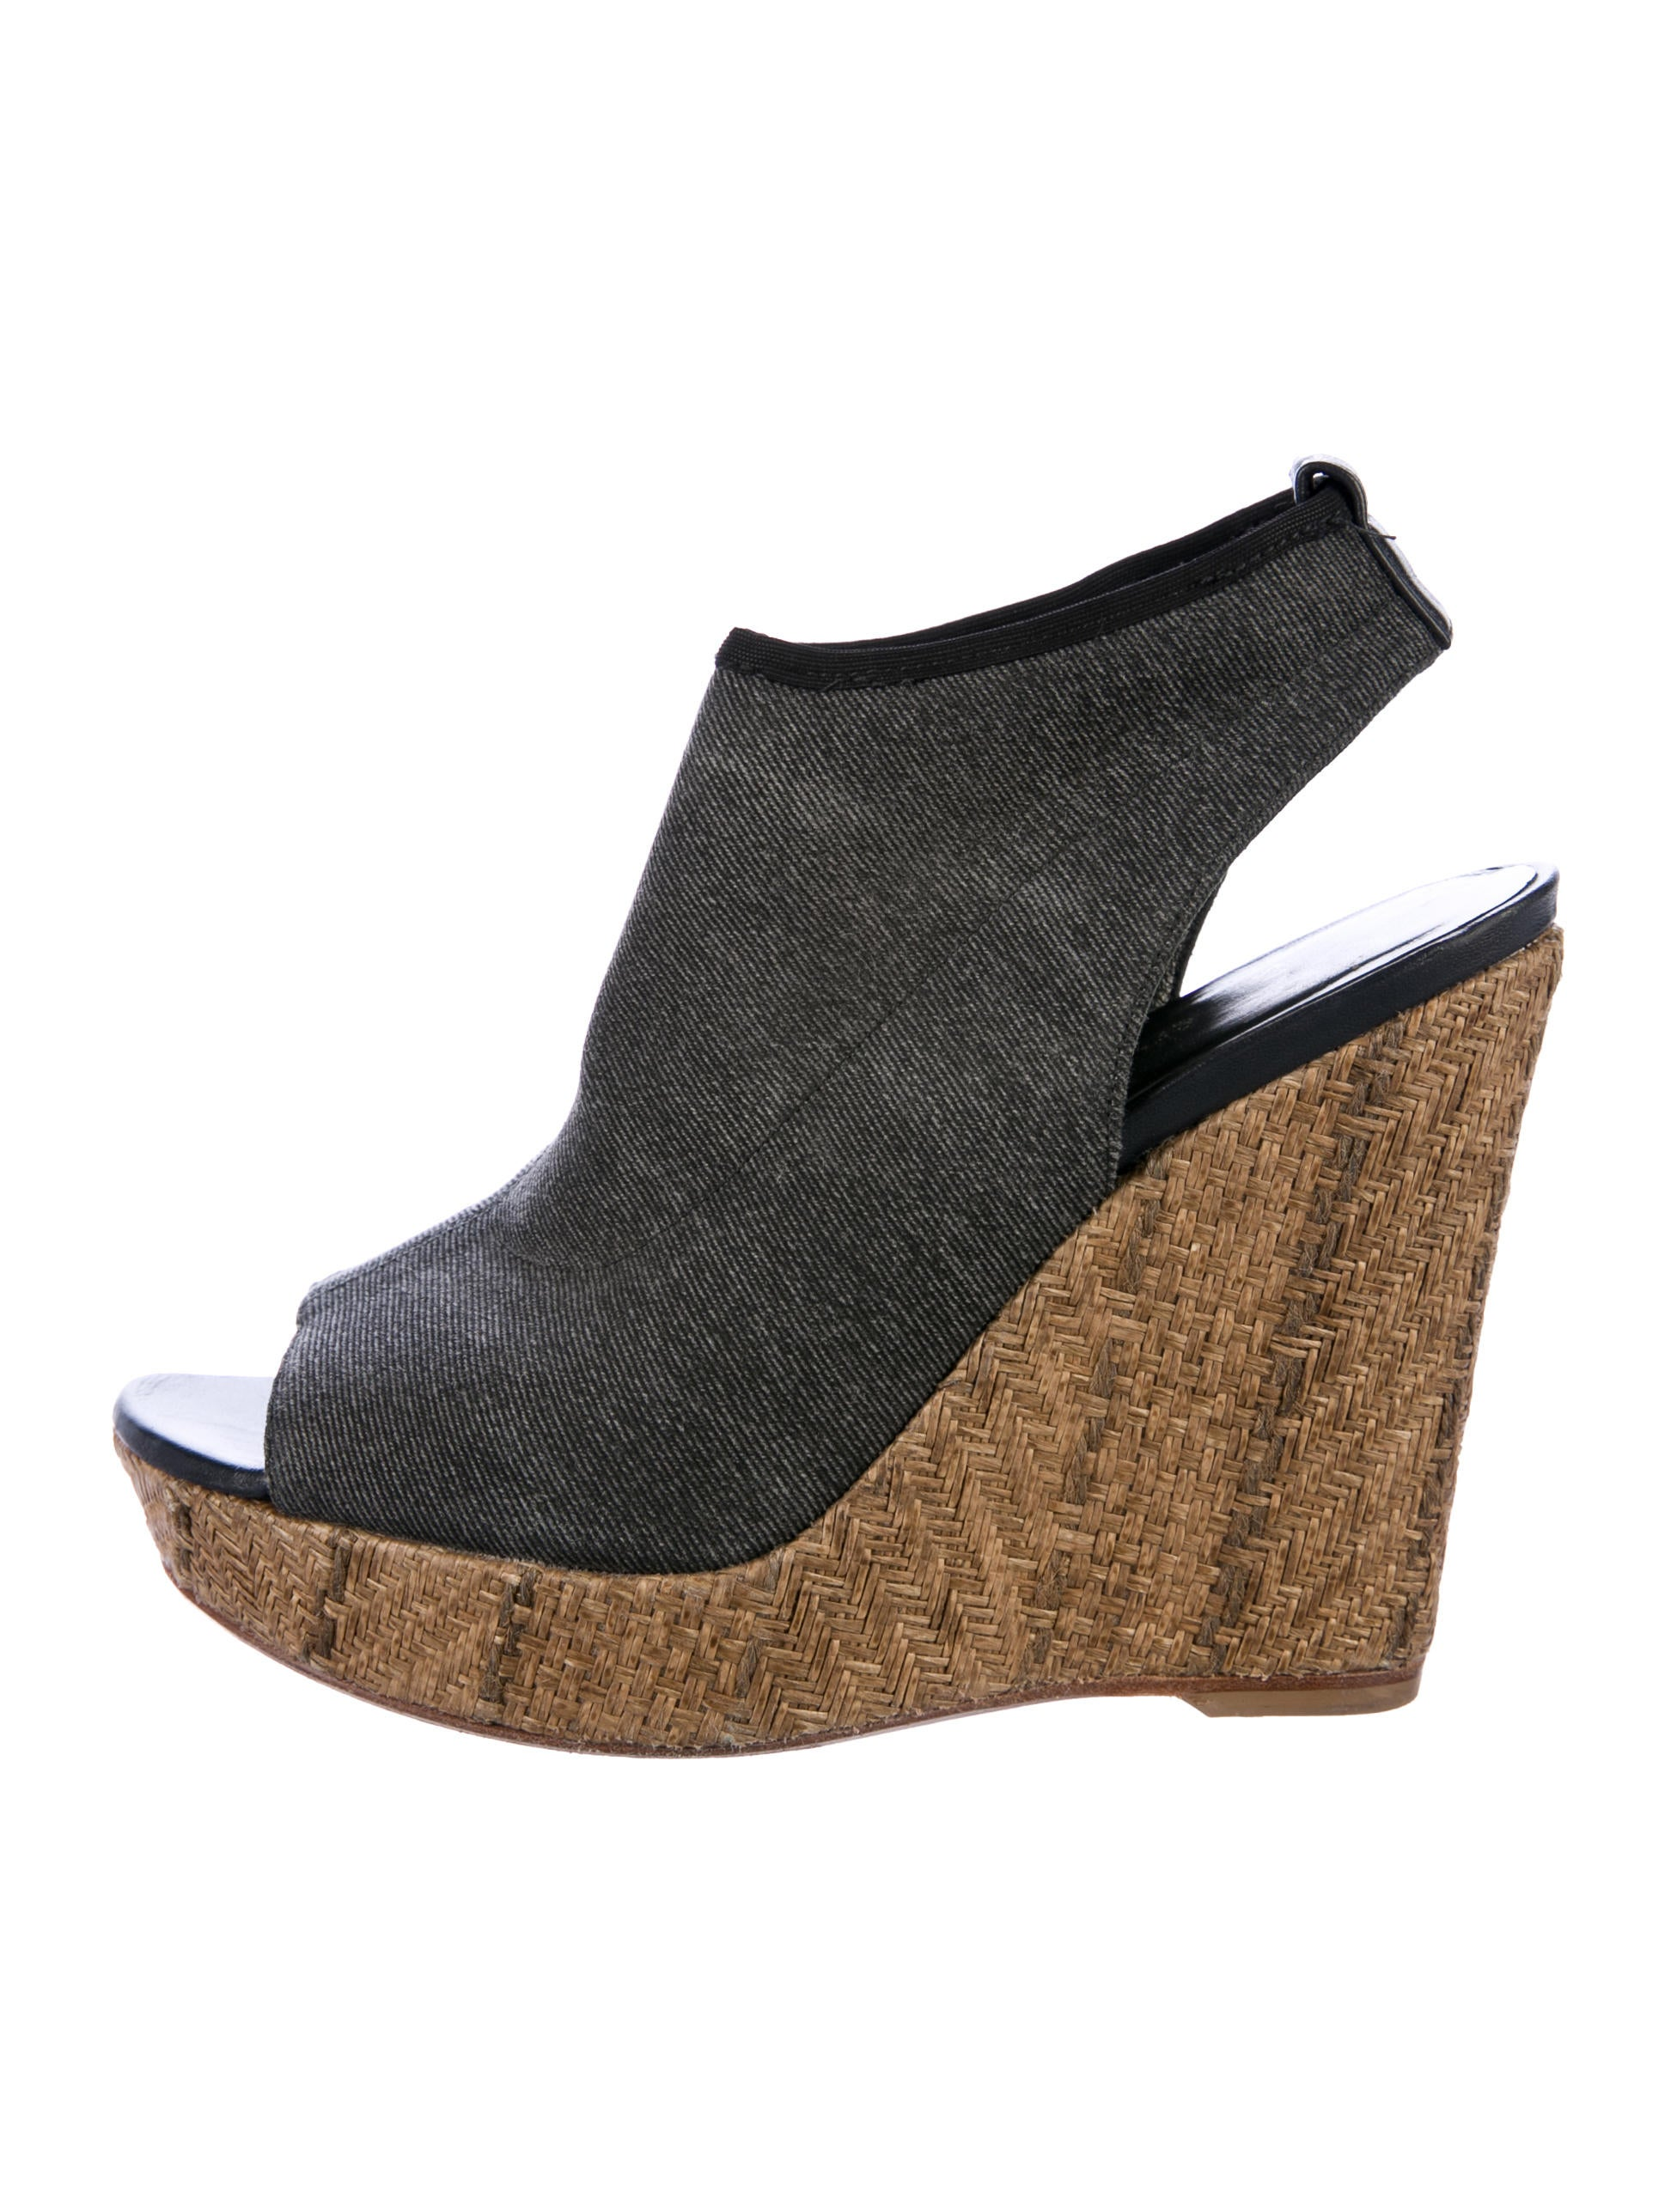 Wedges, a type of platform shoe, have been around since the s. The first wedges didn't have a distinct heel and had cellophane straps. The wedge heel is thick and one piece with the sole, whereas high-heeled shoes have a separate heel.